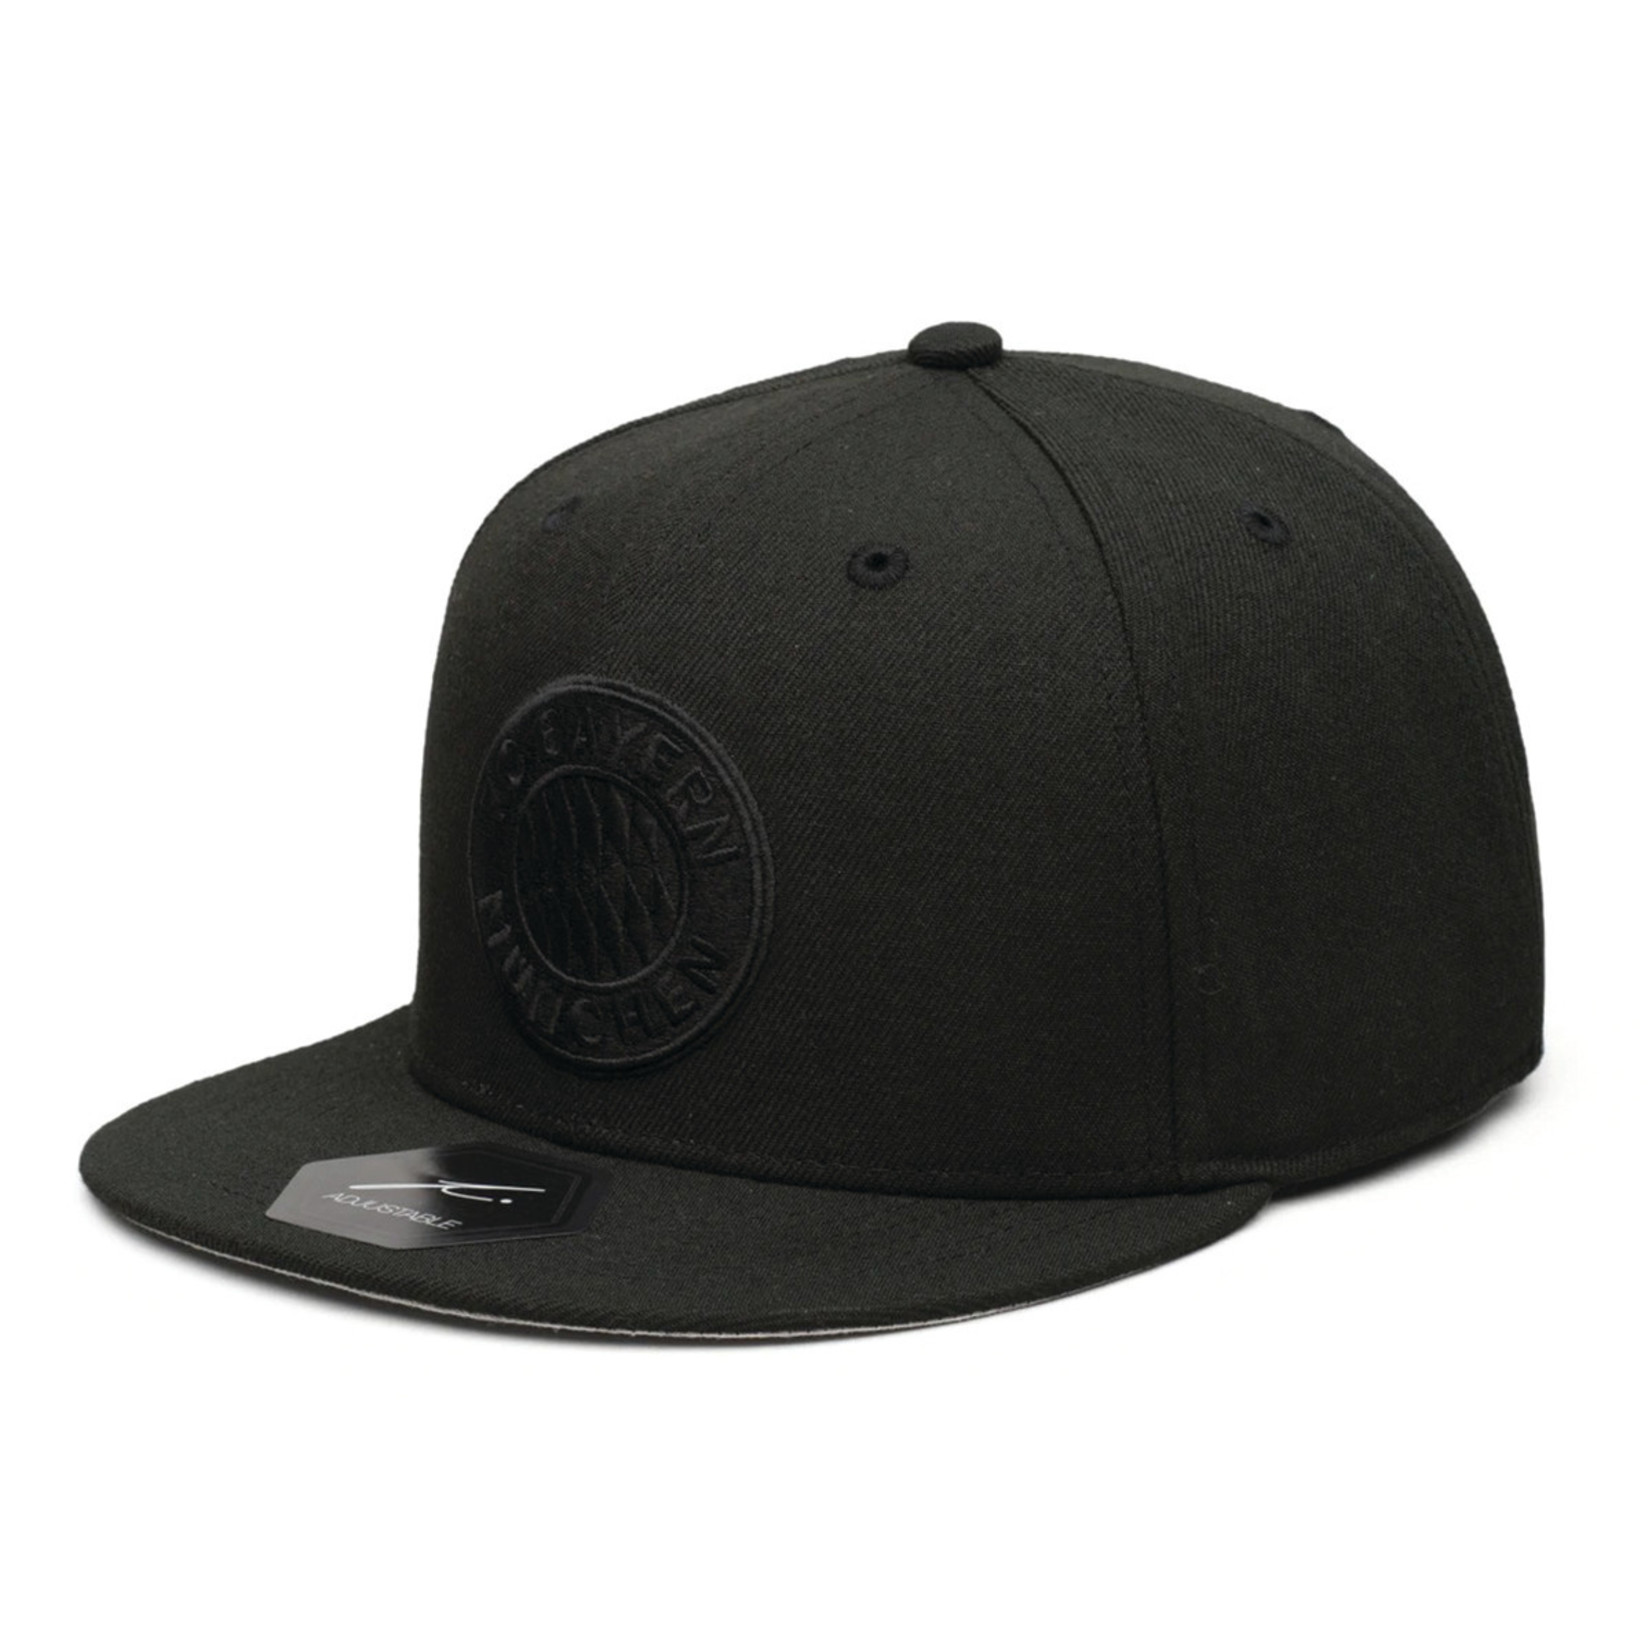 FAN INK BAYERN MUNICH DUSK SNAPBACK HAT